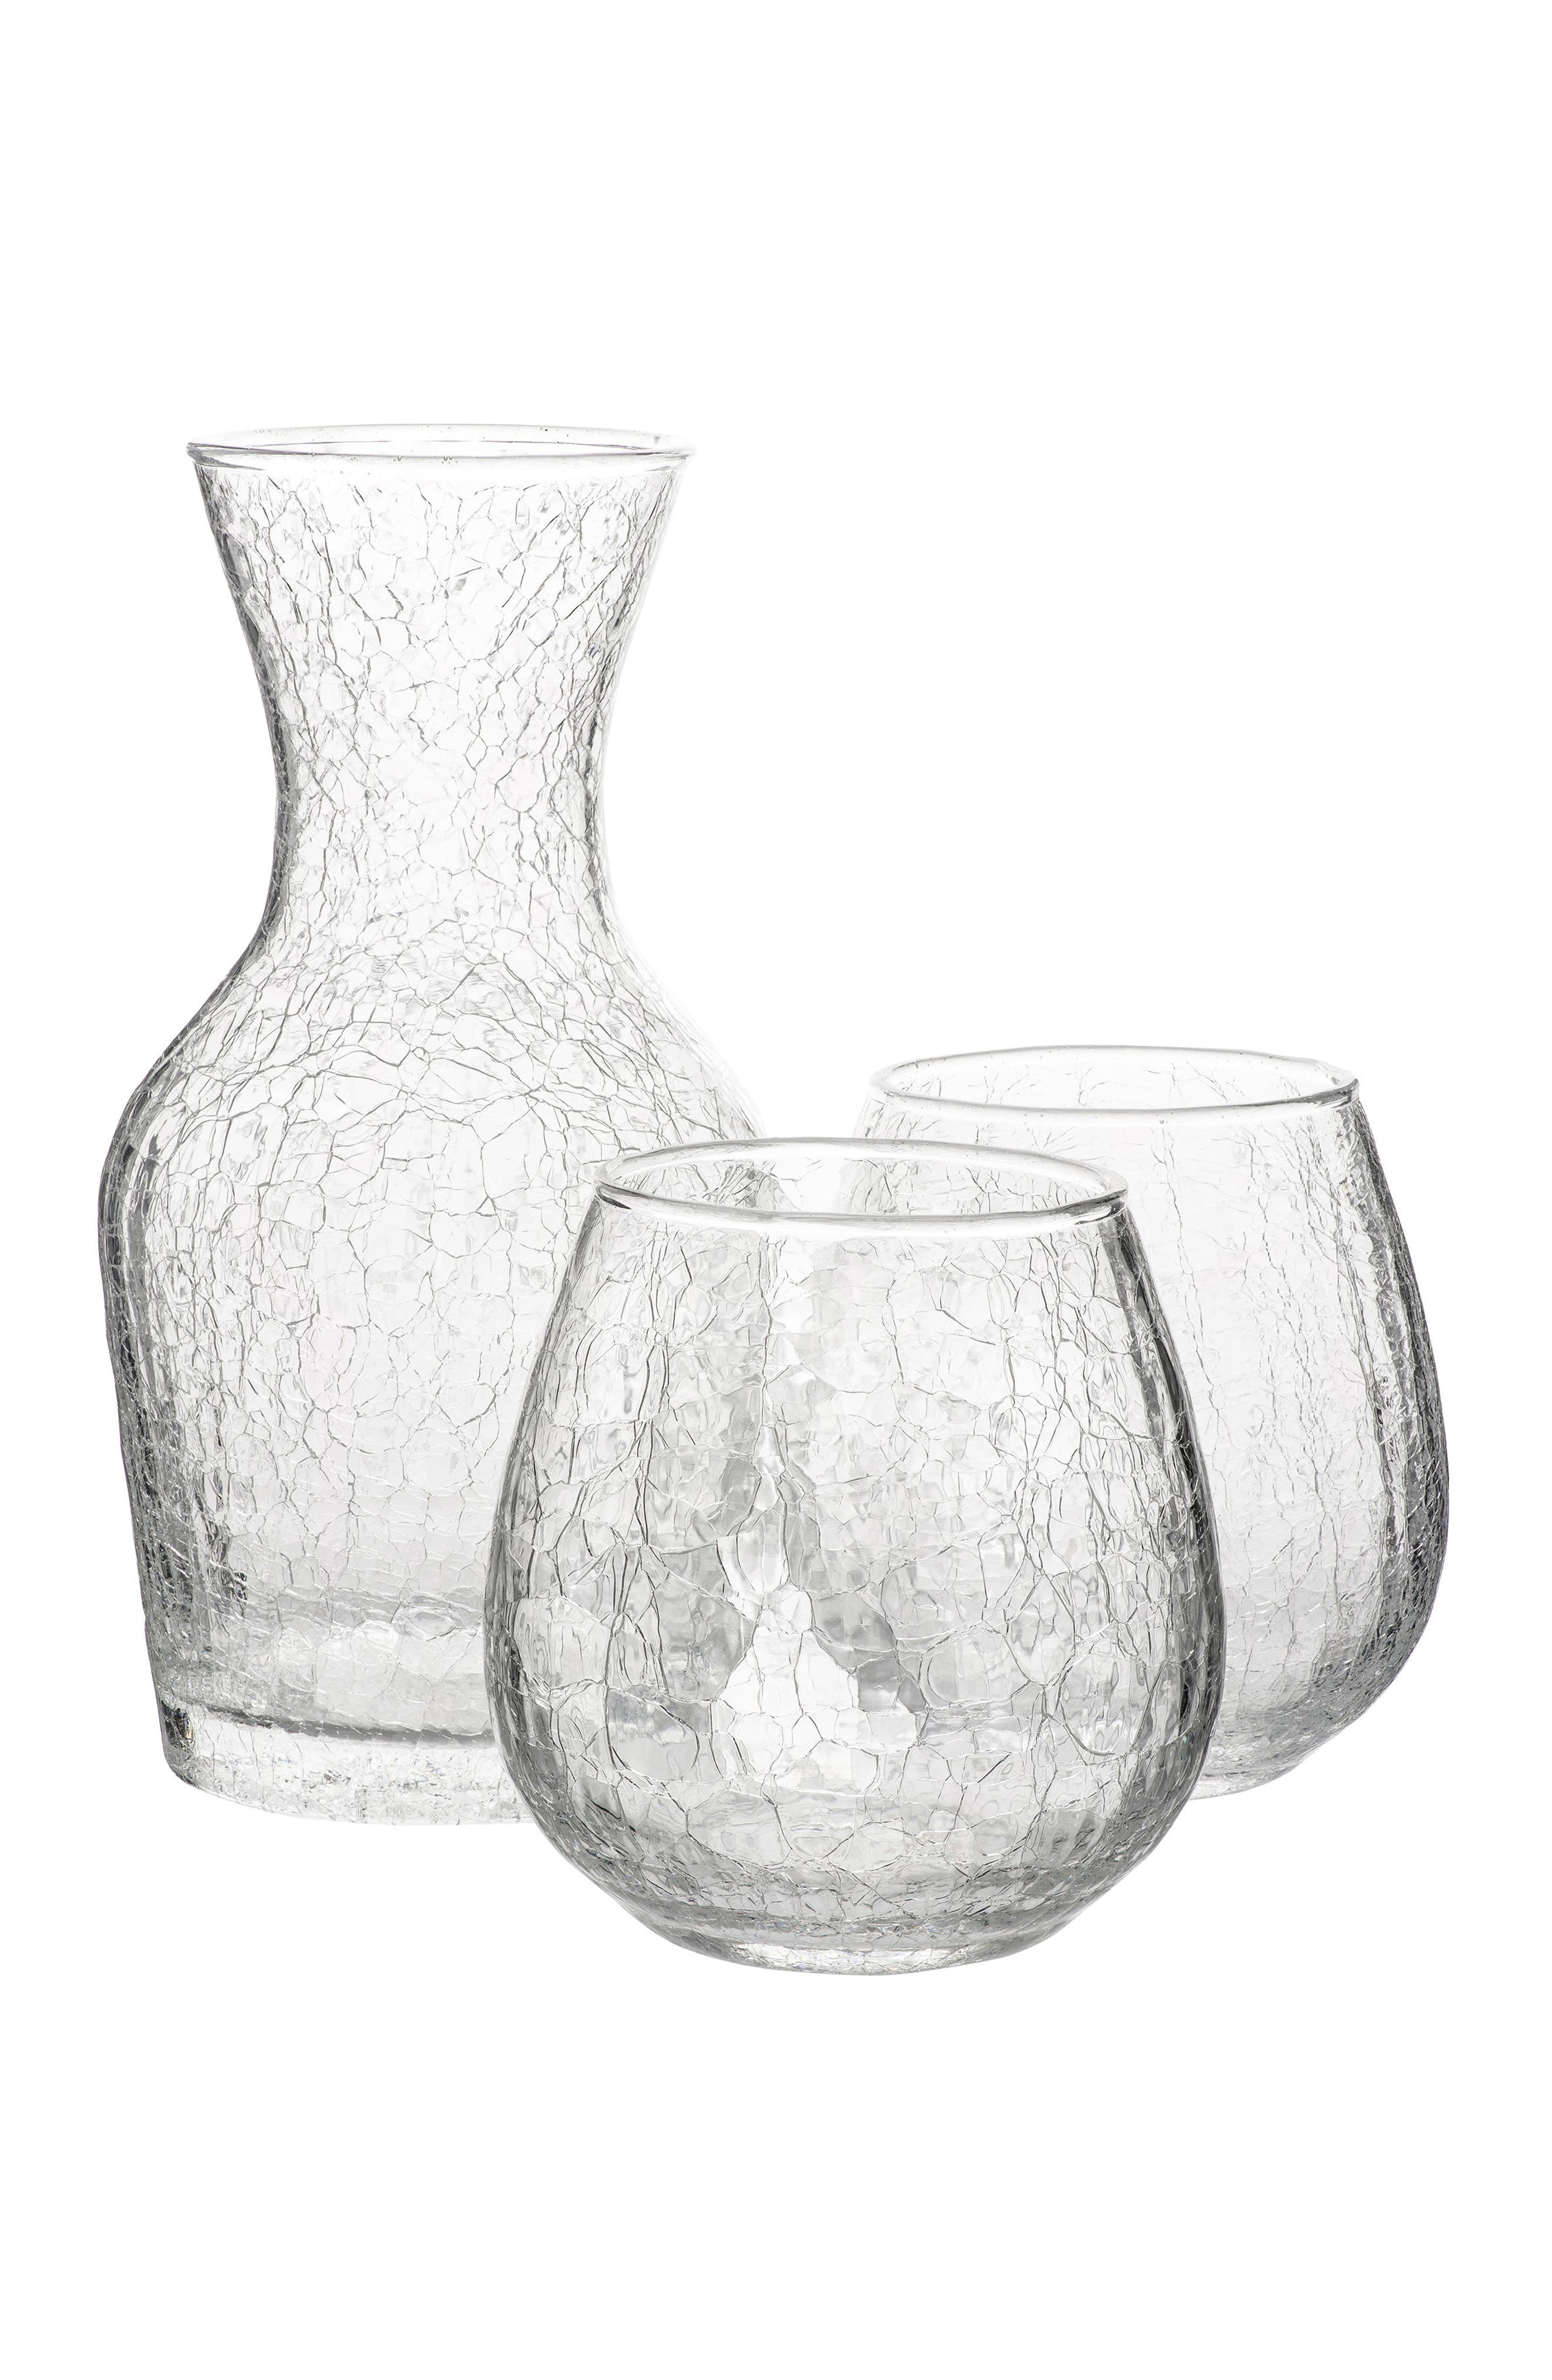 Hugo 3-Piece Carafe & Glasses Set,                             Main thumbnail 1, color,                             Clear